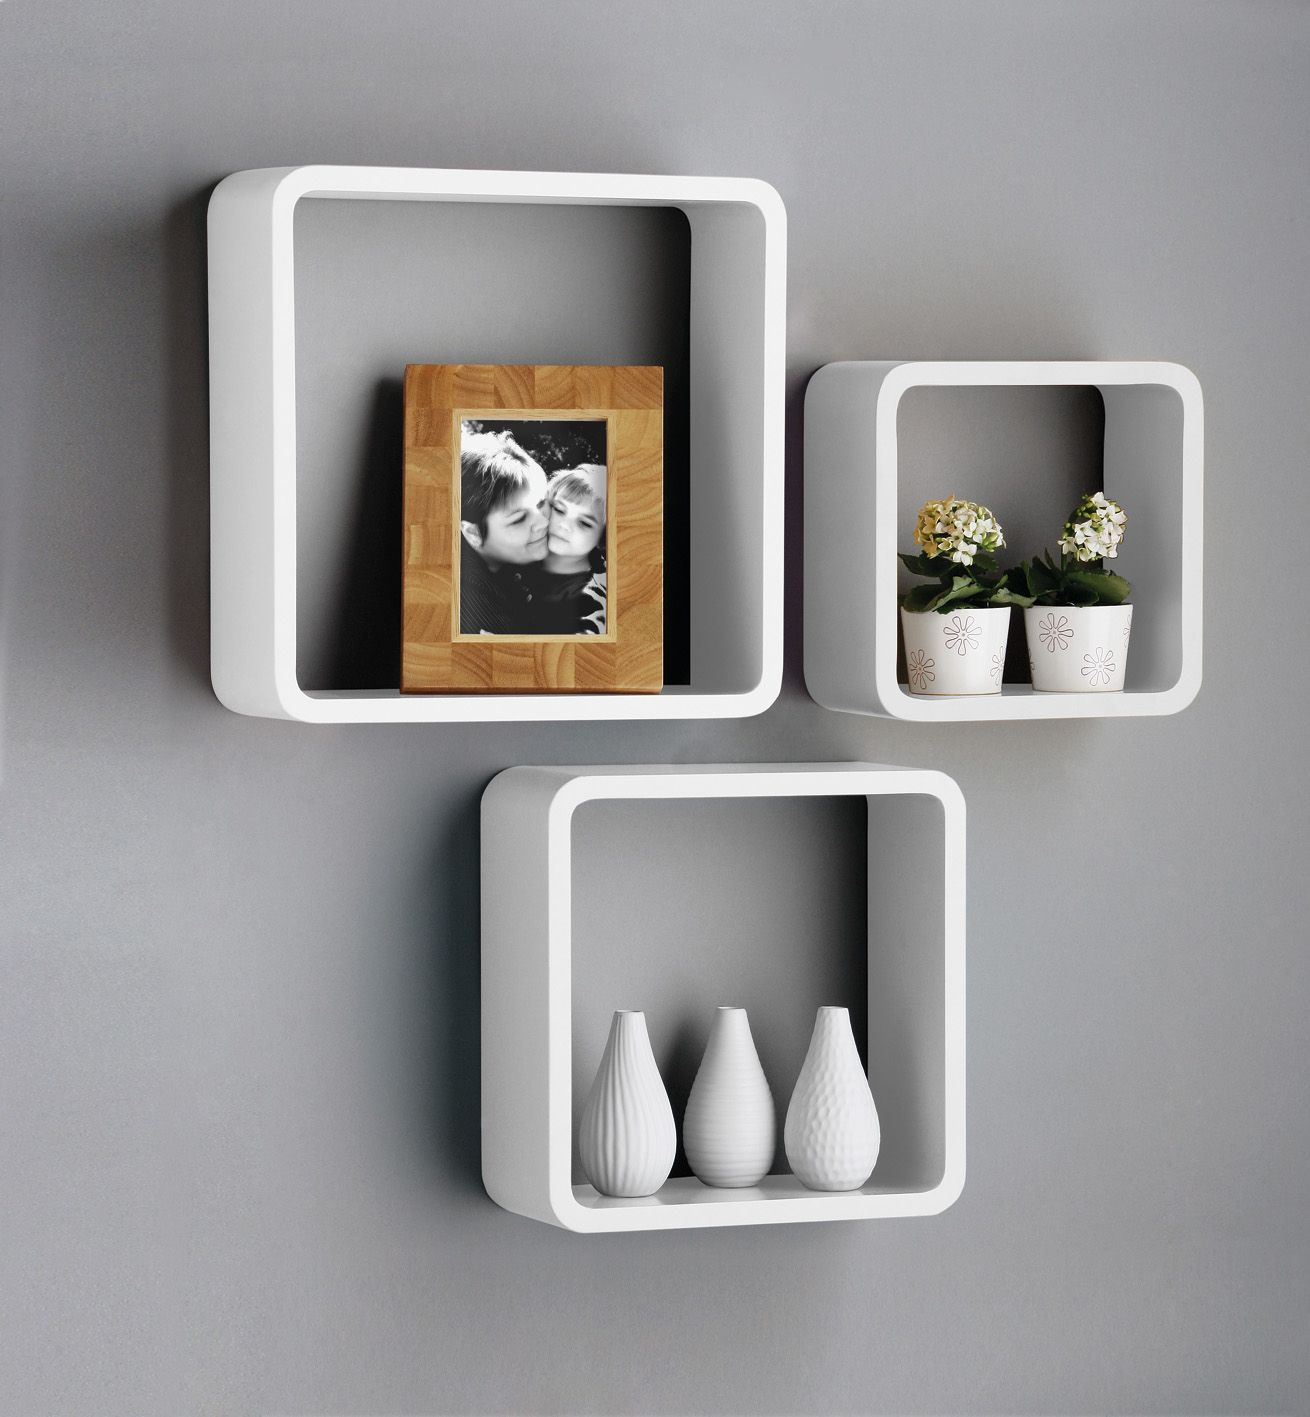 details about new set white black square floating cube wall cubes rectangular shelf storage shelves vintage brackets shoe organizer ideas small space wardrobe closet command